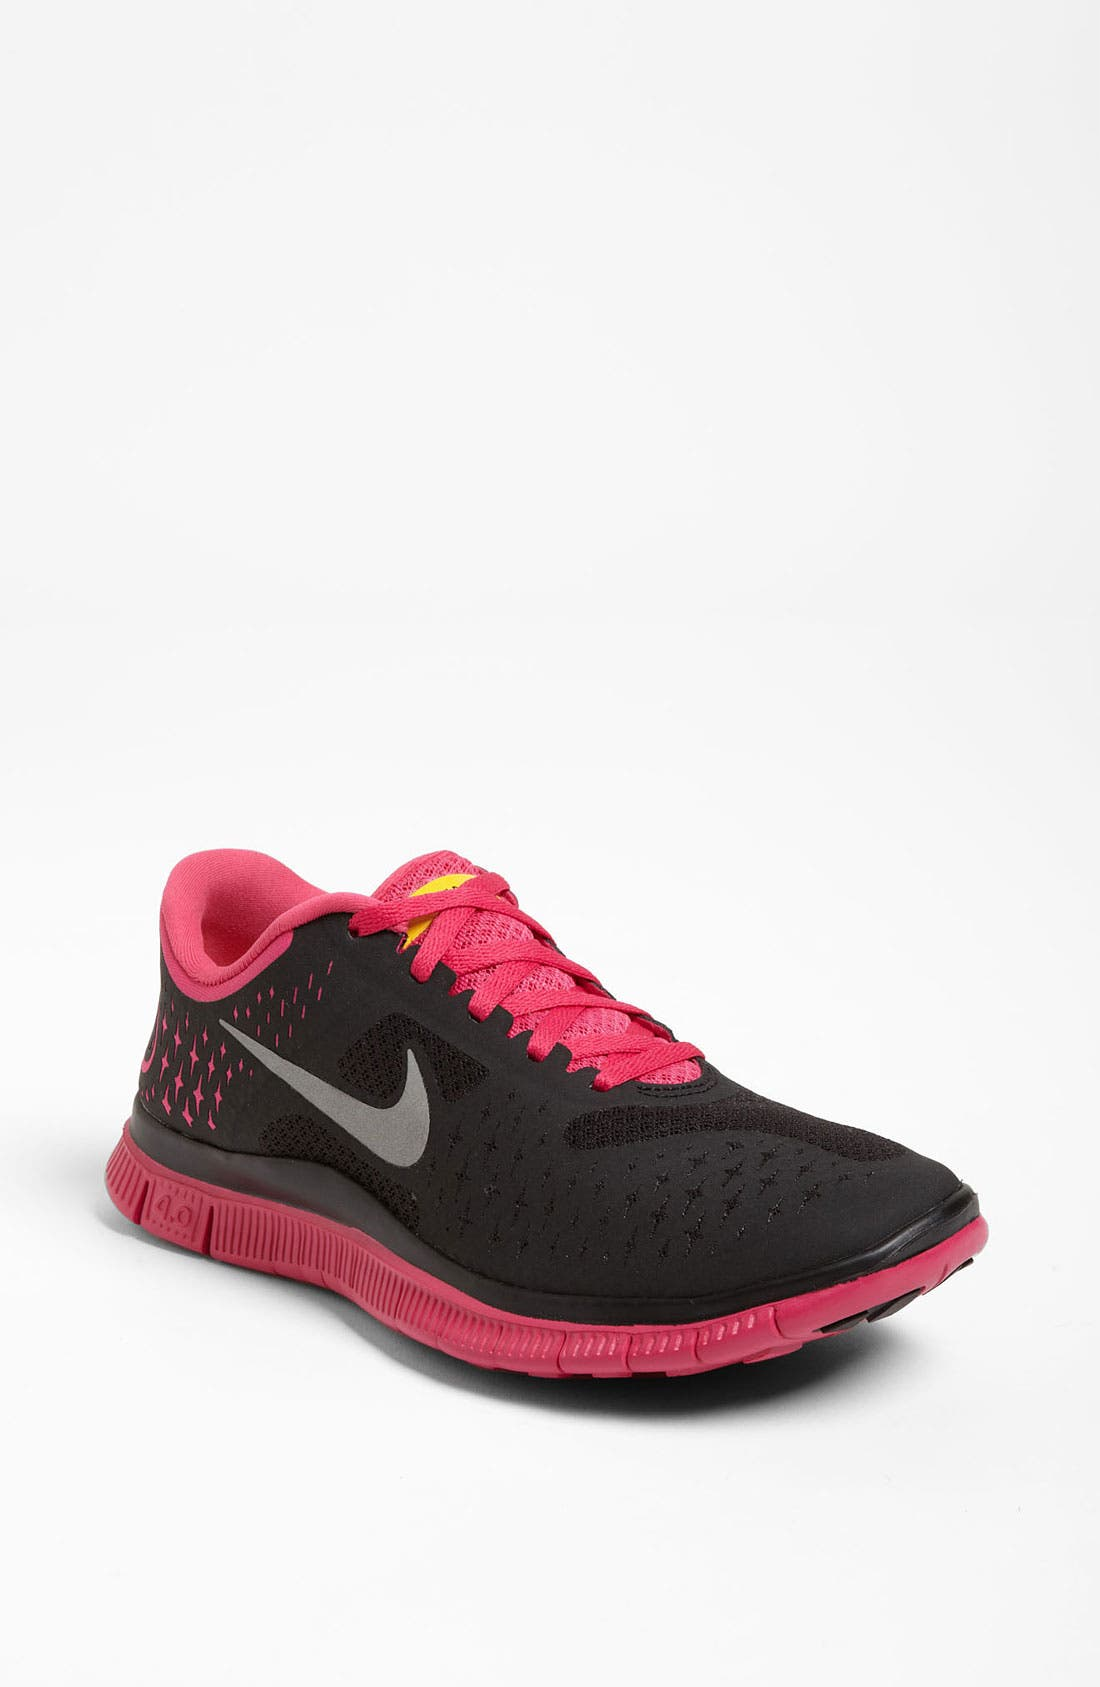 Alternate Image 1 Selected - Nike 'Free 4.0 V2 Livestrong' Running Shoe (Women)